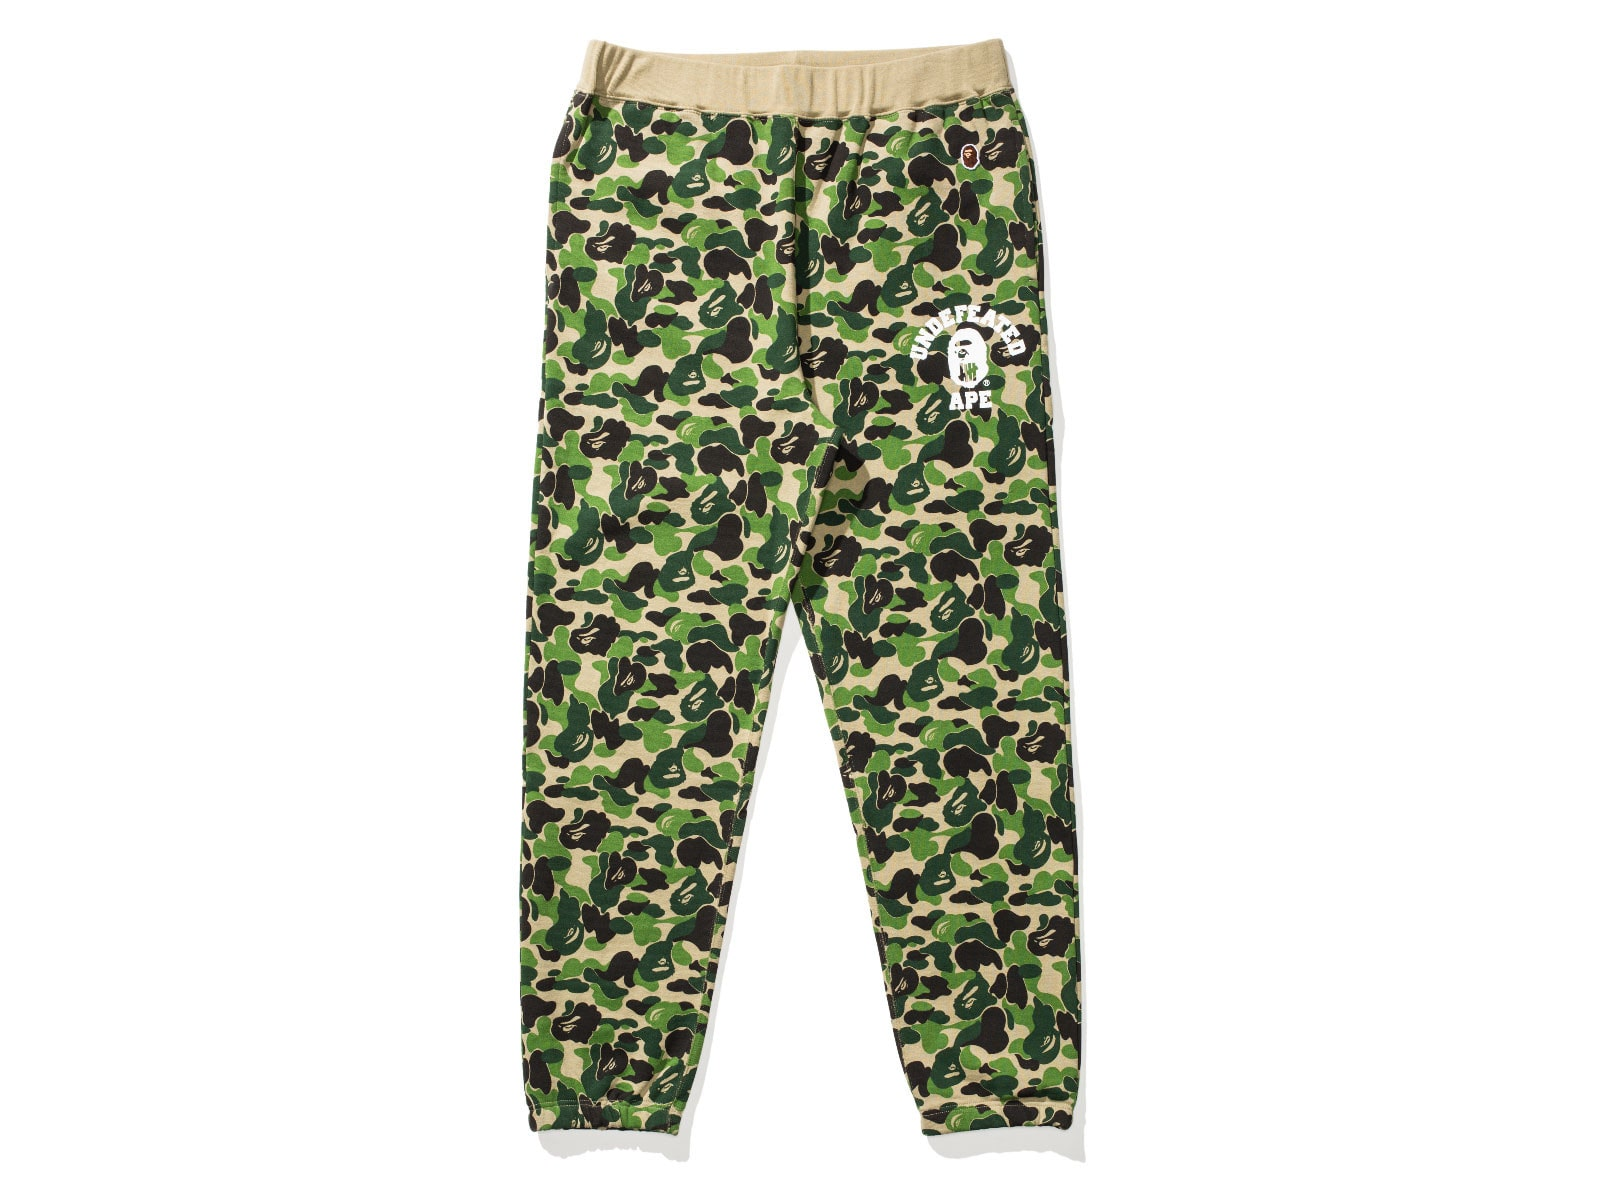 BAPE X UNDEFEATED ABC SWEAT PANTS - GREEN